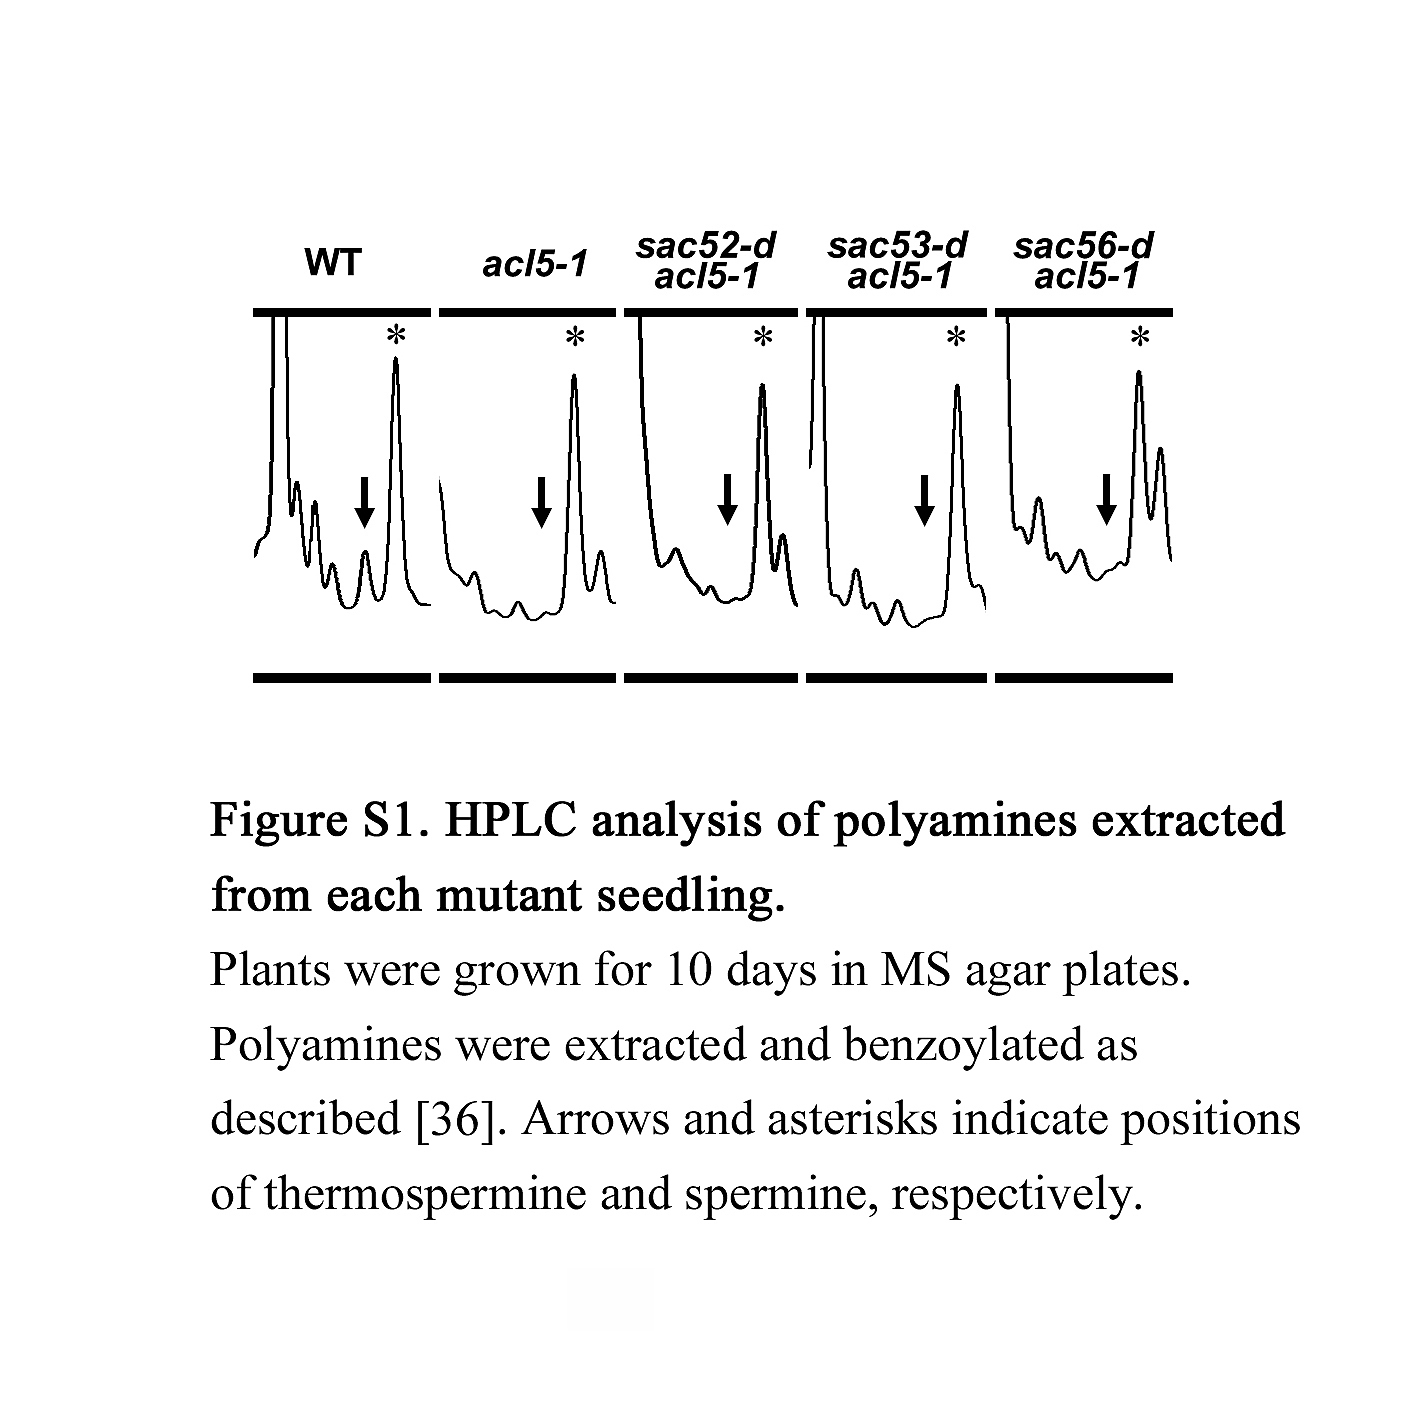 Mutations In Ribosomal Proteins Rpl4 And Rack1 Suppress The Black White Plant Cell Diagram What Numbered Arrow S1 Fig Hplc Analysis Of Polyamines Extracted From Each Mutant Seedling